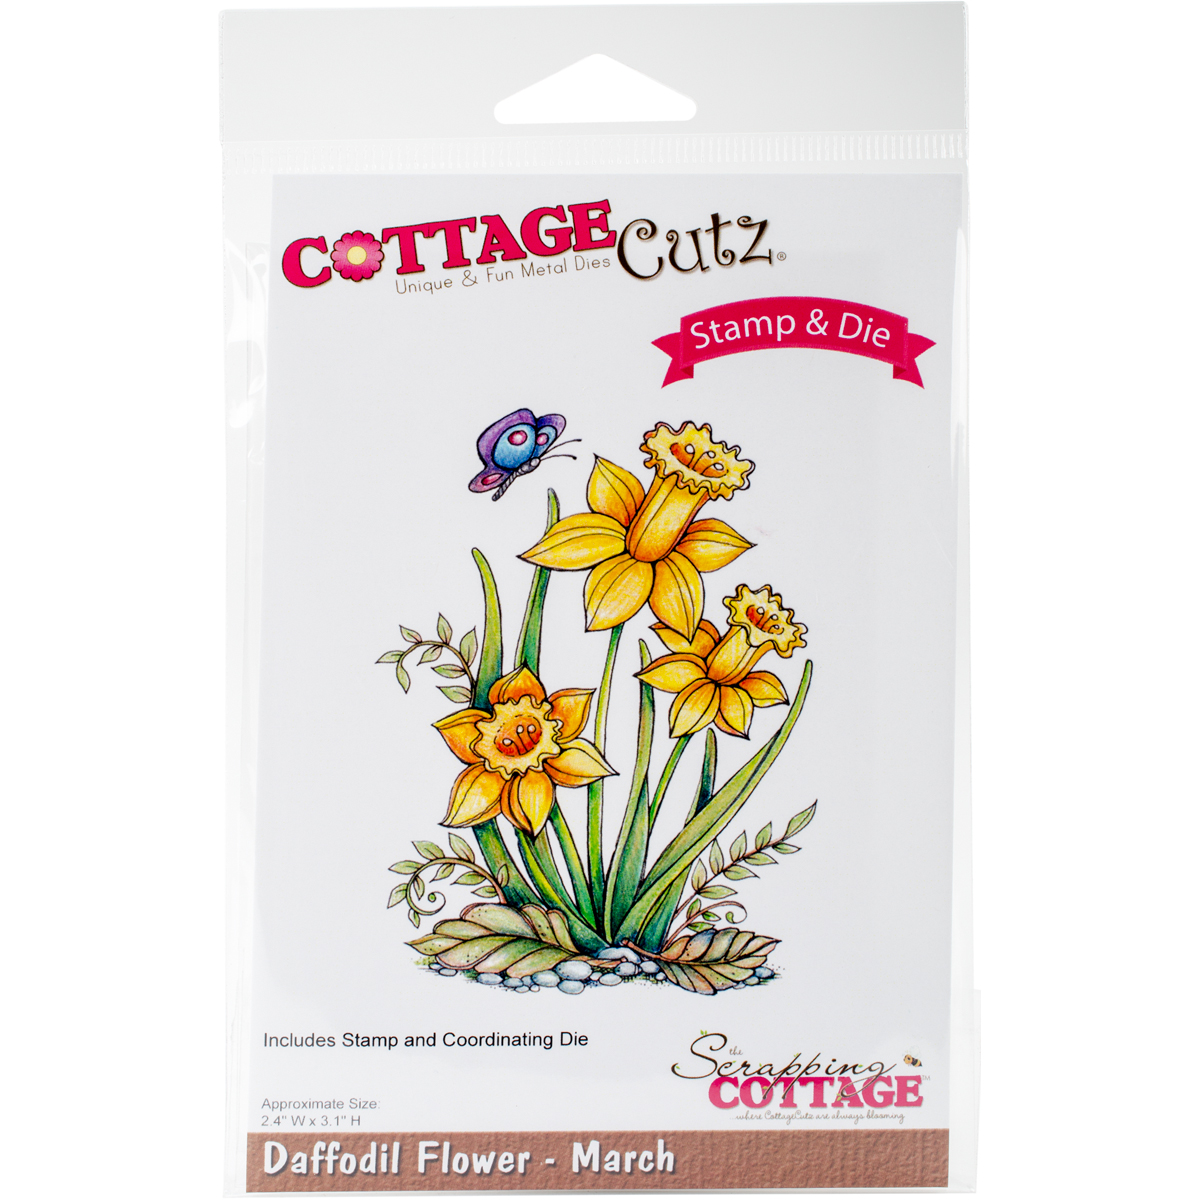 CottageCutz Stamp & Die Set-Daffodil - March